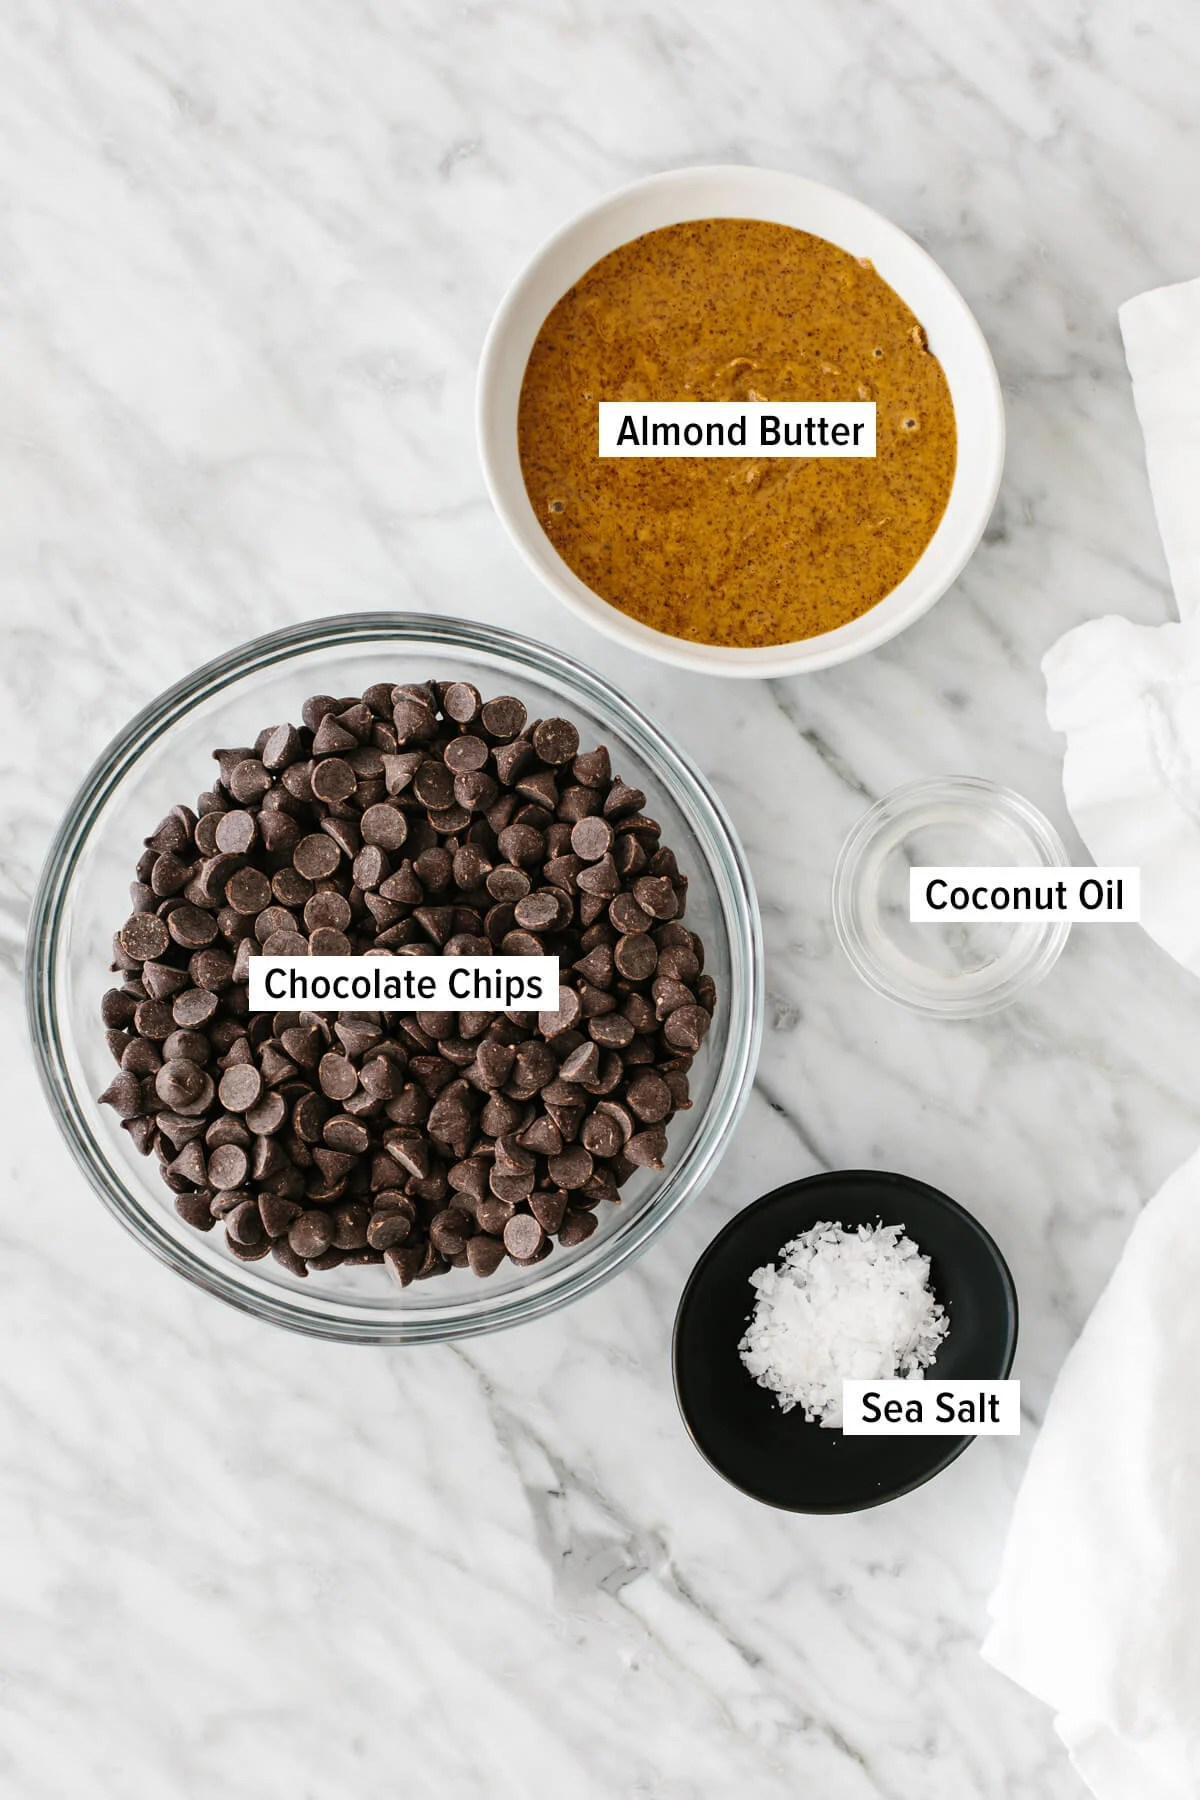 Ingredients for almond butter cups on a table.